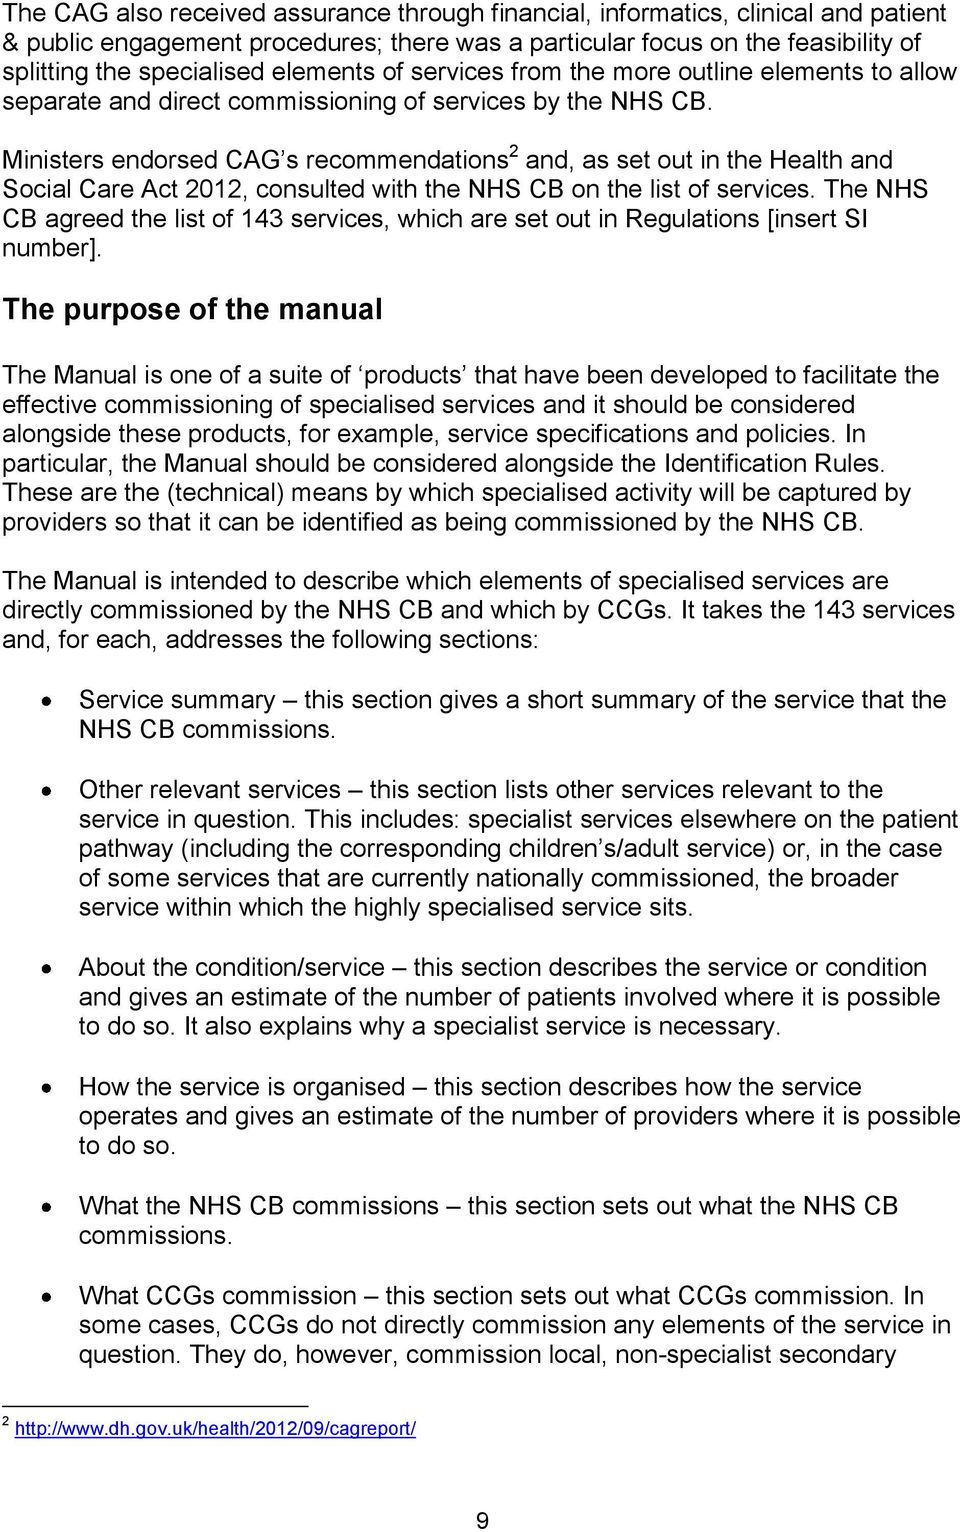 Ministers endorsed CAG s recommendations 2 and, as set out in the Health and Social Care Act 2012, consulted with the NHS CB on the list of services.